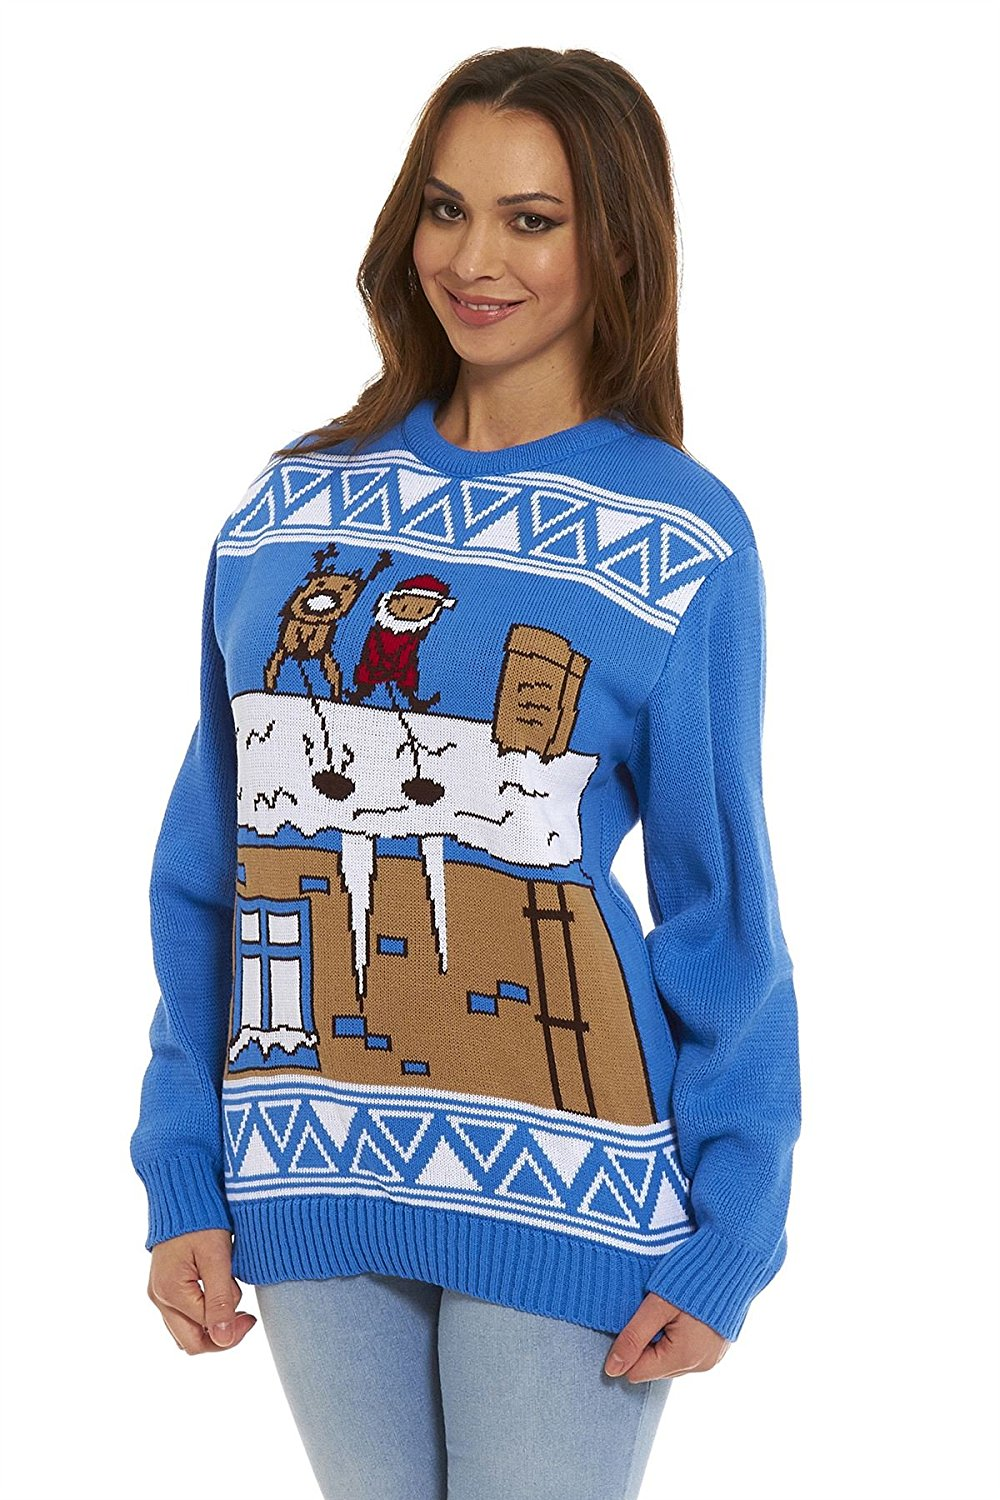 Ten Best Funny Christmas Sweaters For Christmas 2018 - Top Ten Select